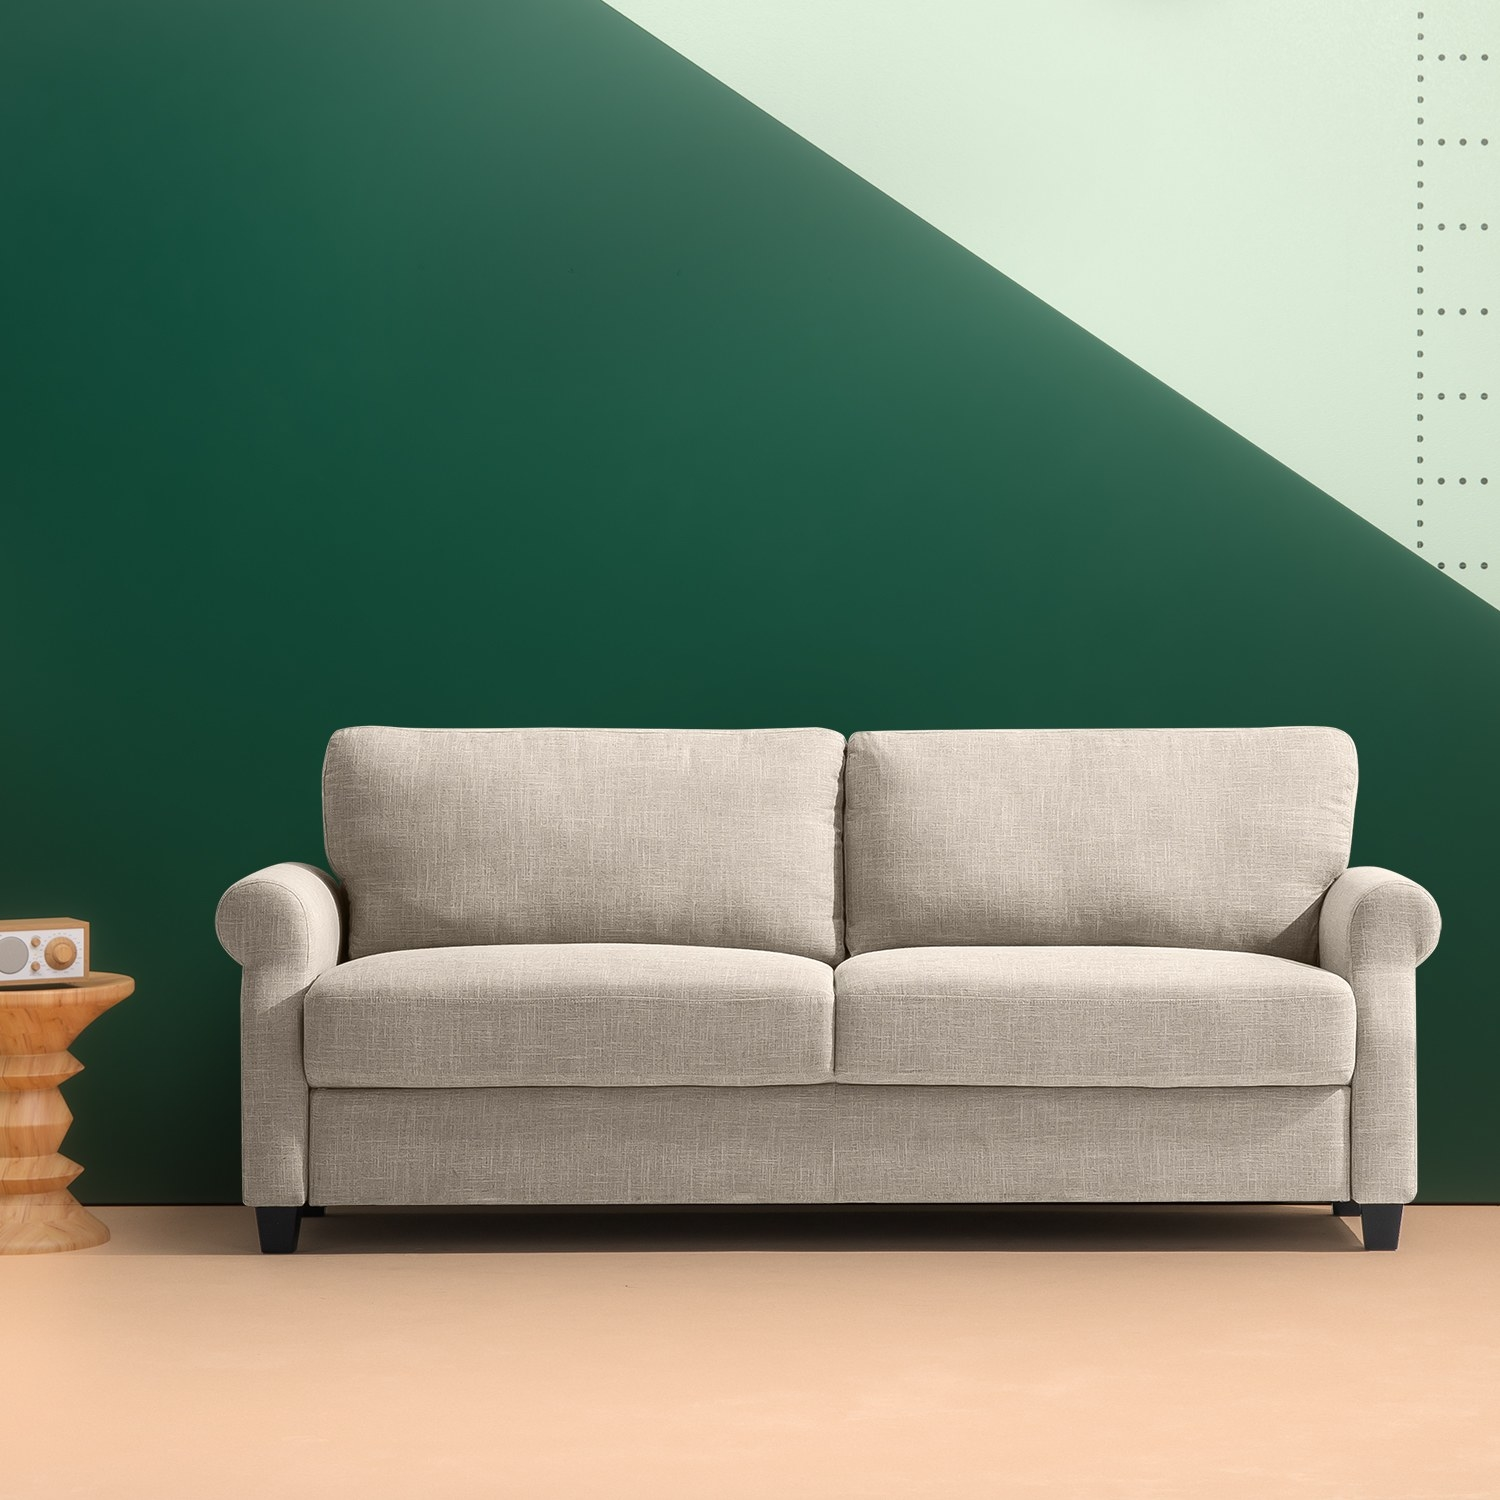 The beige couch with thick cushions and rounded arms